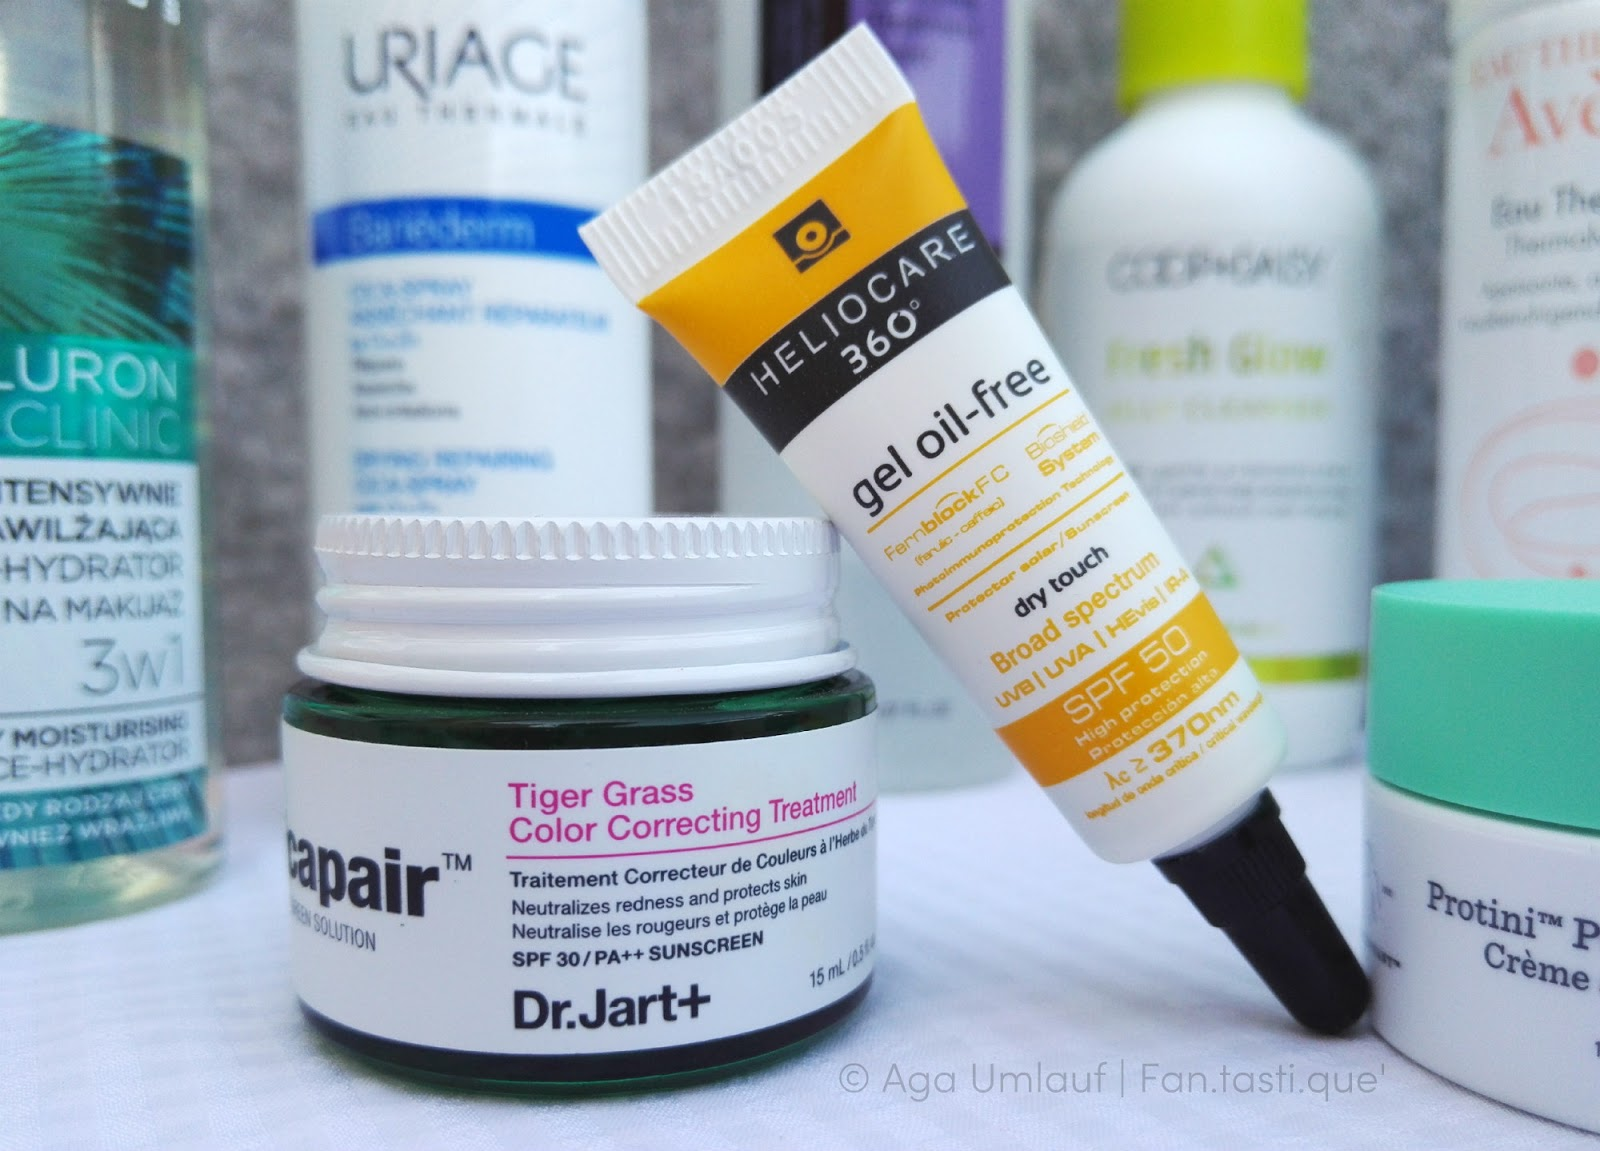 My favourite skincare products: The Dr. Jart+ Tiger Grass Color Correcting Treatment and the Heliocare 360 gel oil-free sunscreen with SPF 50